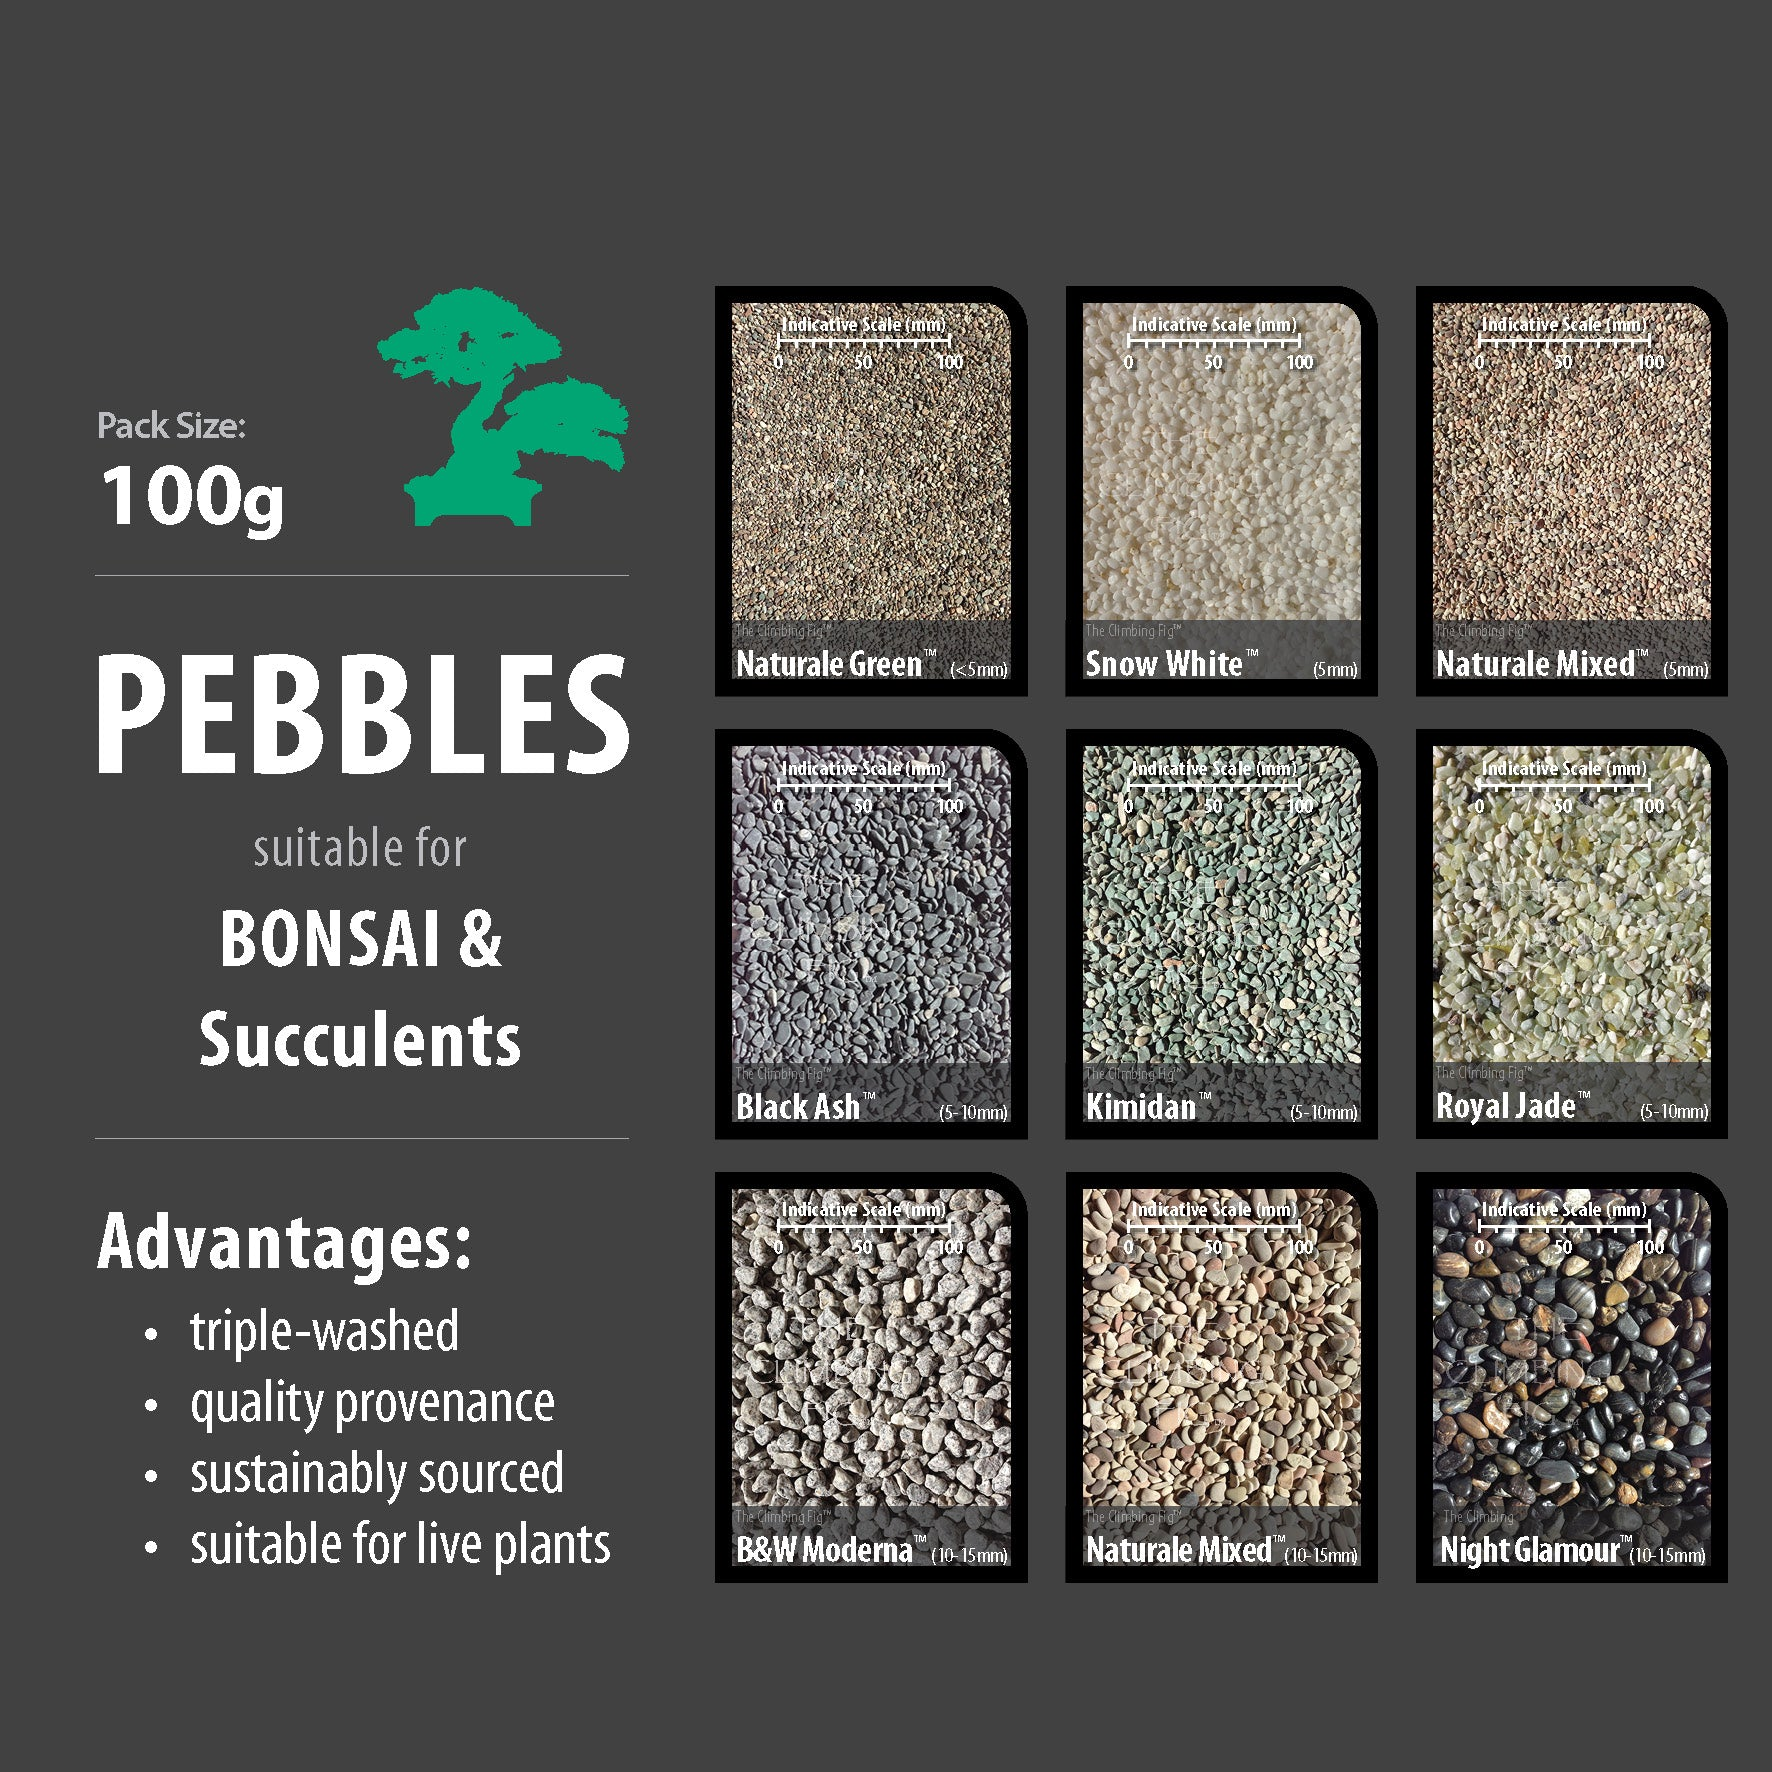 100g Pebbles suitable for Bonsai, Succulents & Terrariums